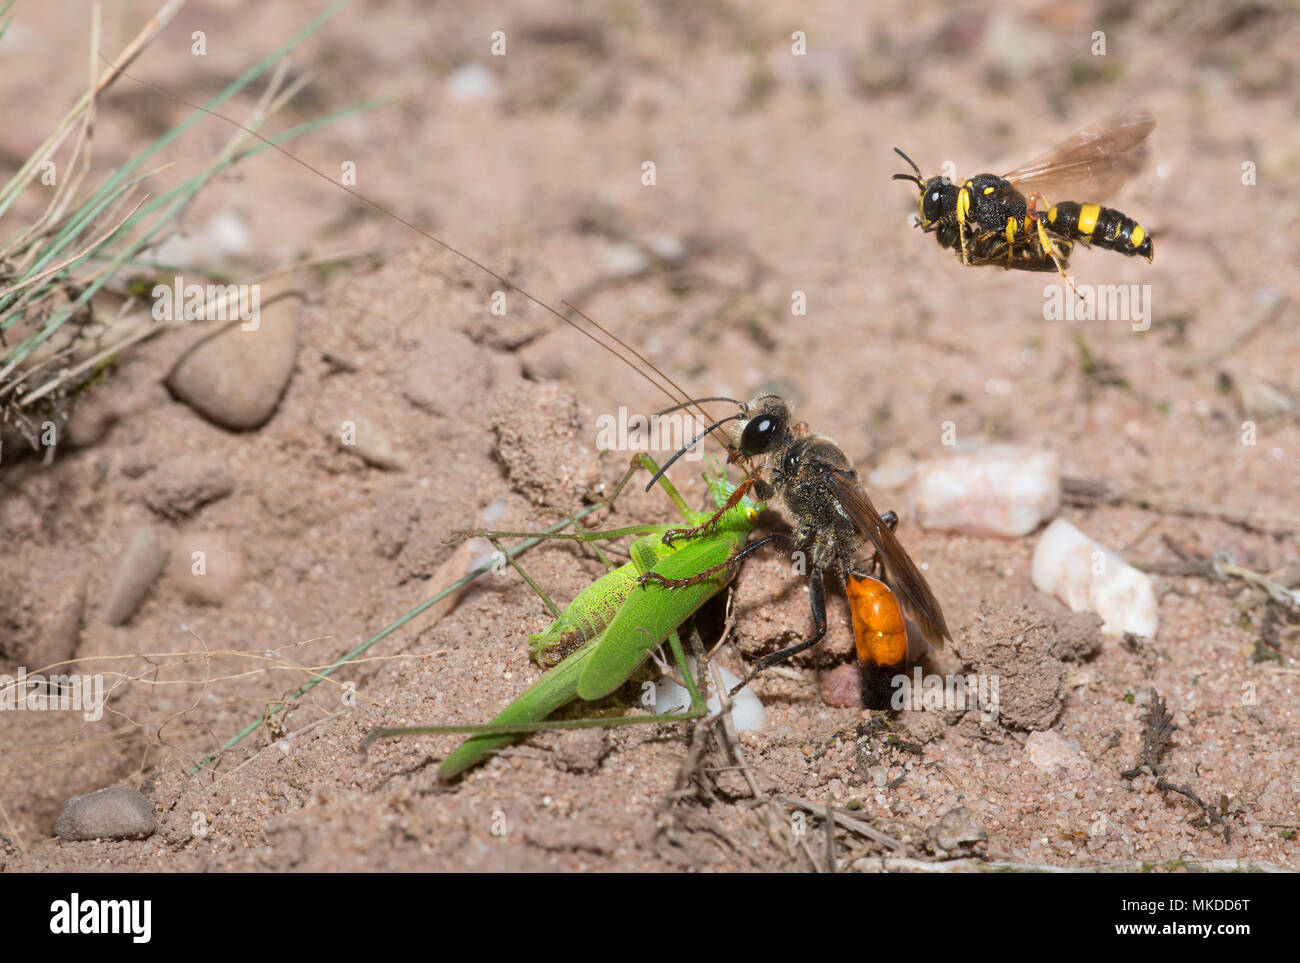 Golden digger wasp (Sphex funerarius) reporting a Sickle-bearing Bush Cricket (Phaneroptera falcata) in its gallery and Ornate Tailed Digger Wasp (Cerceris rybyensis) reporting a Mining bee (Lasioglossum sp), Regional Natural Park of Northern Vosges, France - Stock Image